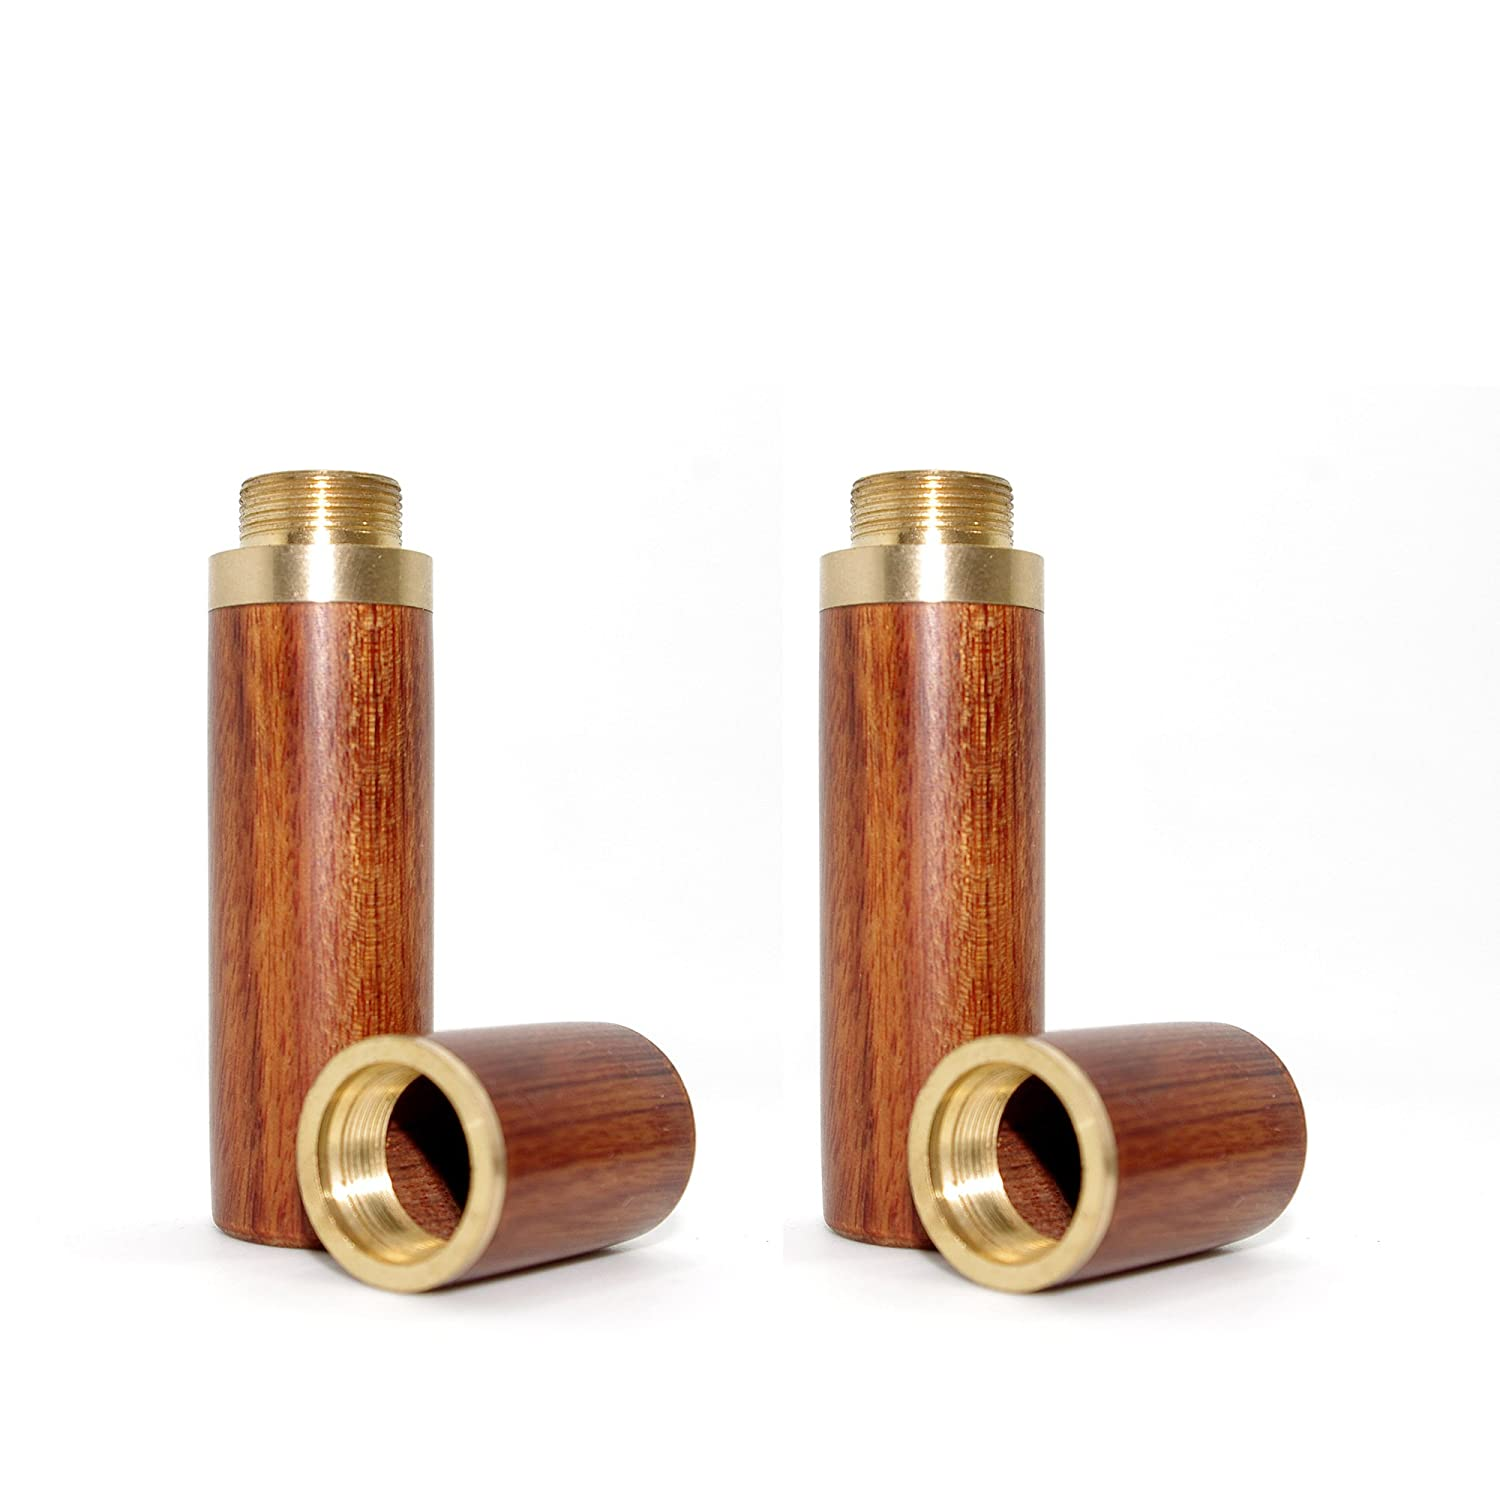 Vecent Portable Wood Toothpick Holder Mini Toothpick box Pocket Toothpick Holder Light Brown 2 Pcs COMINHKPR115182